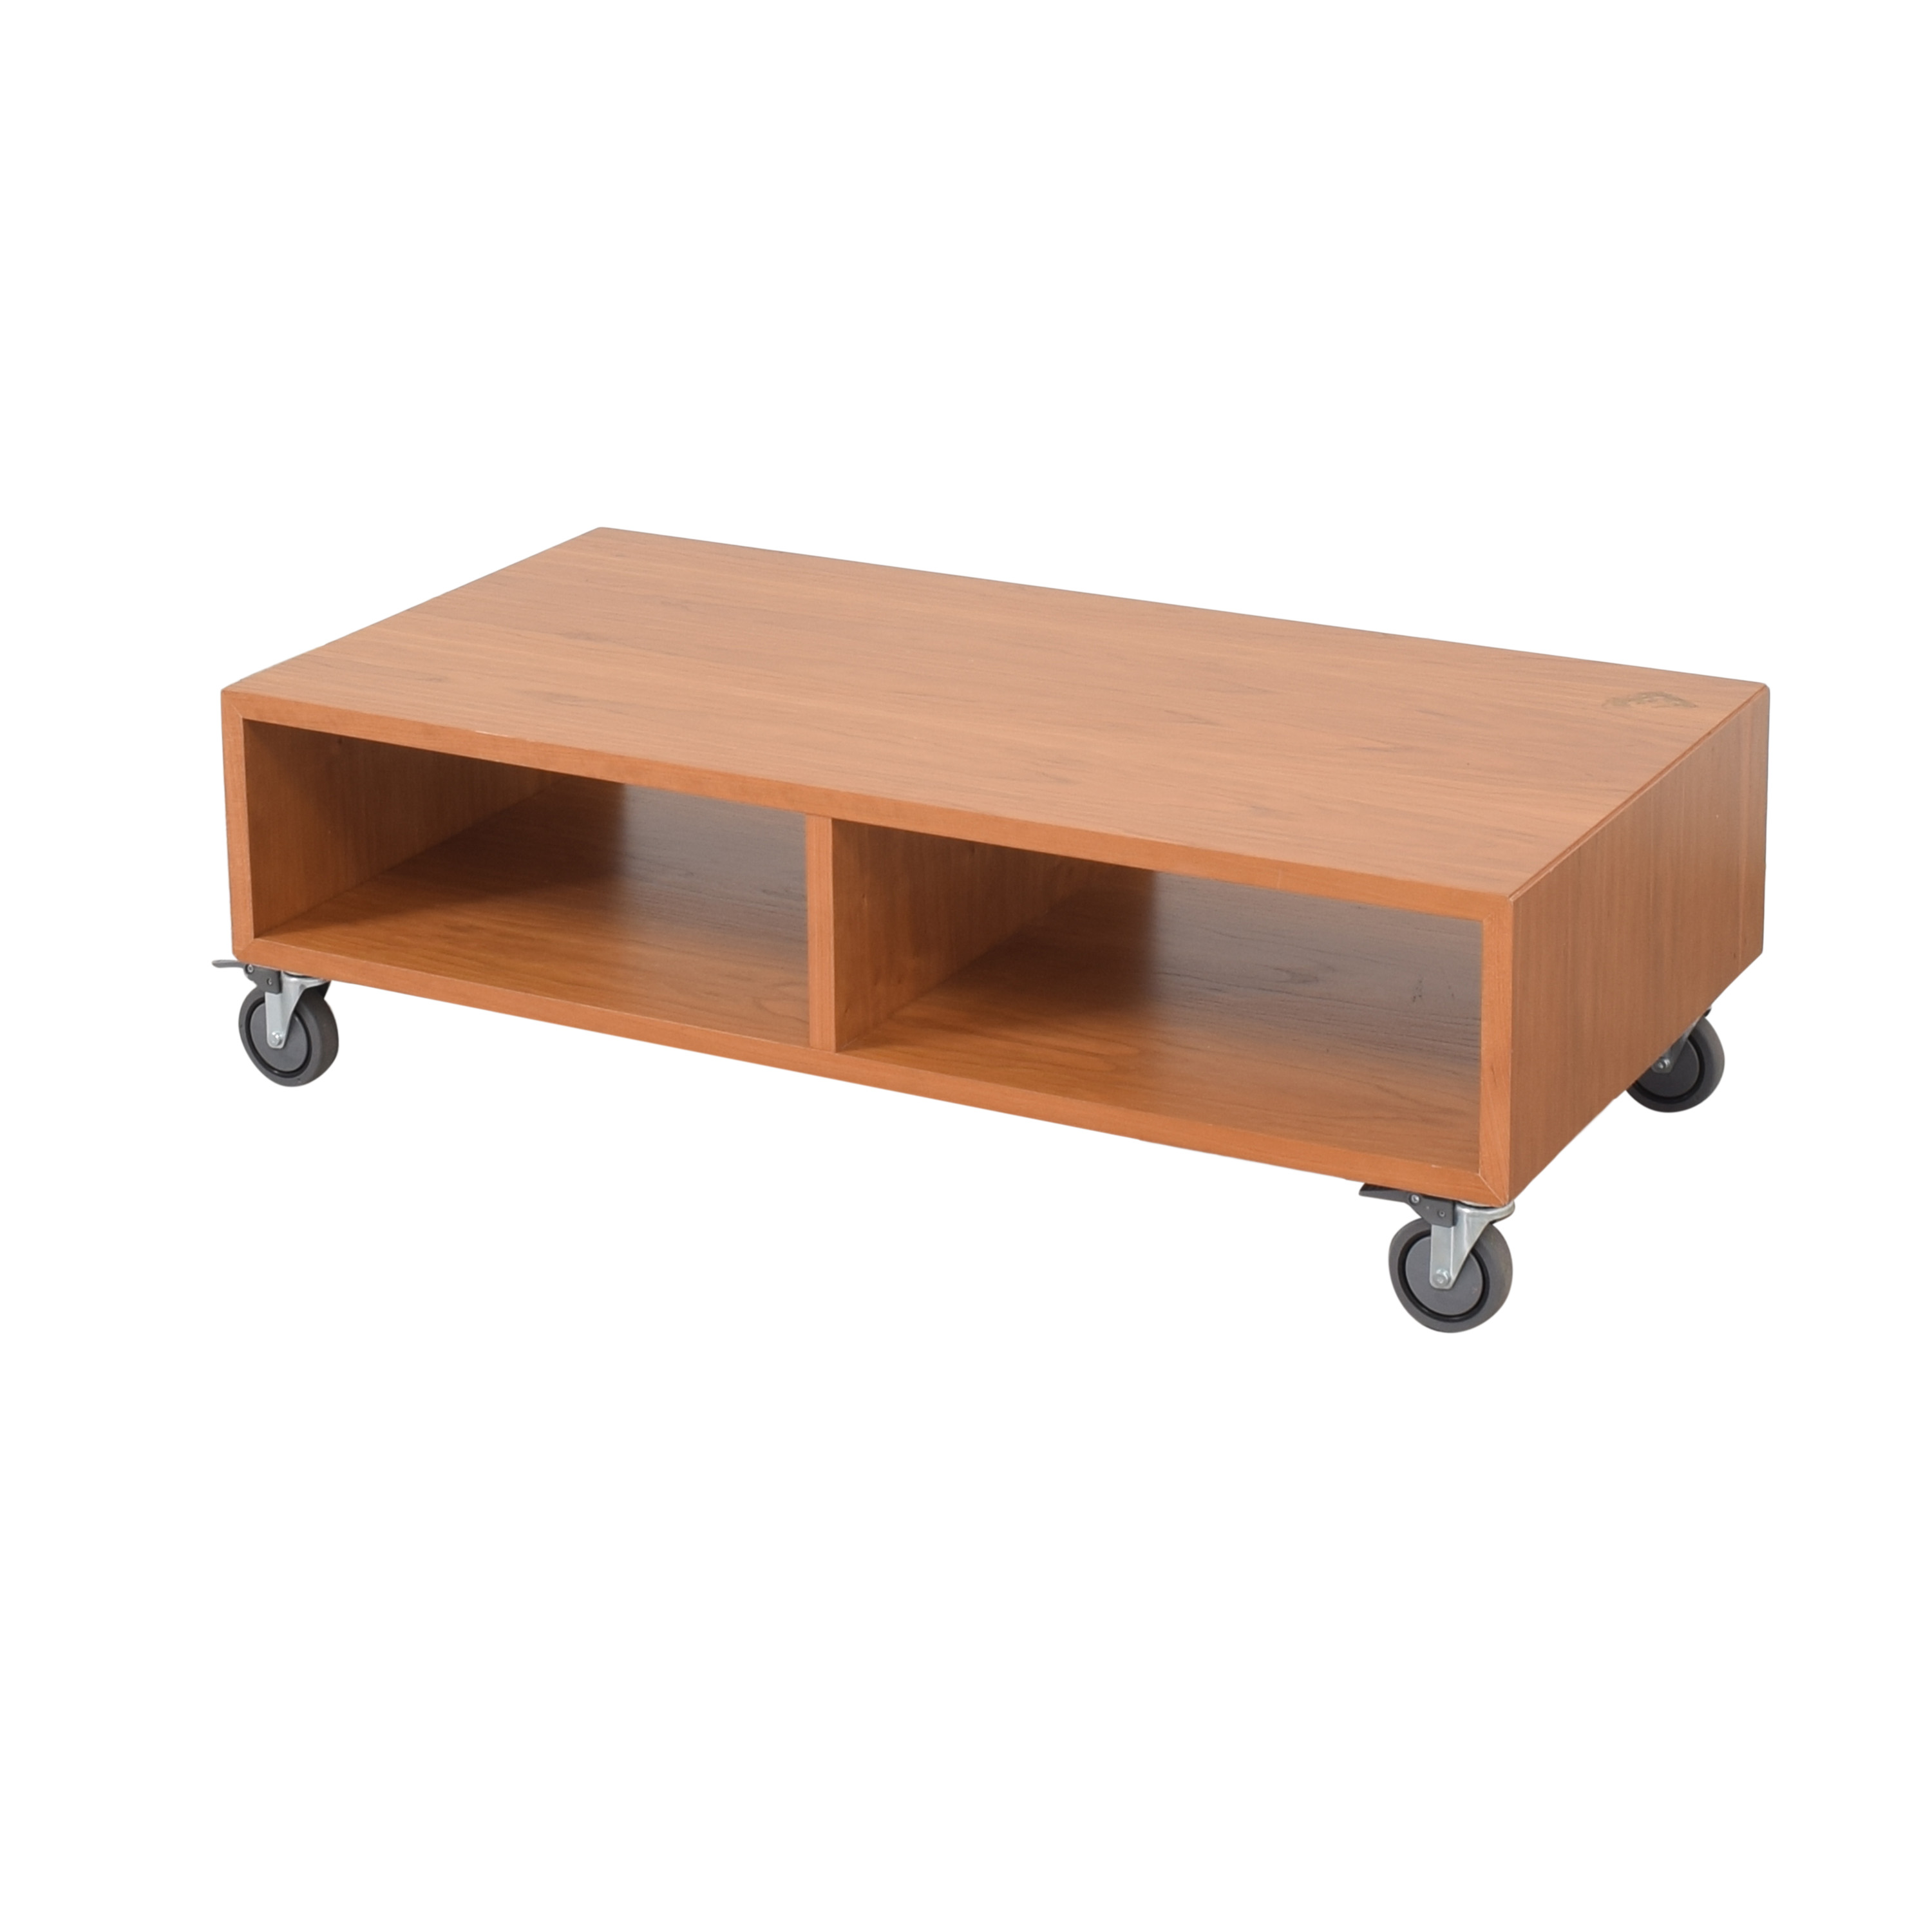 Room & Board Room & Board Cocktail Table on Casters on sale